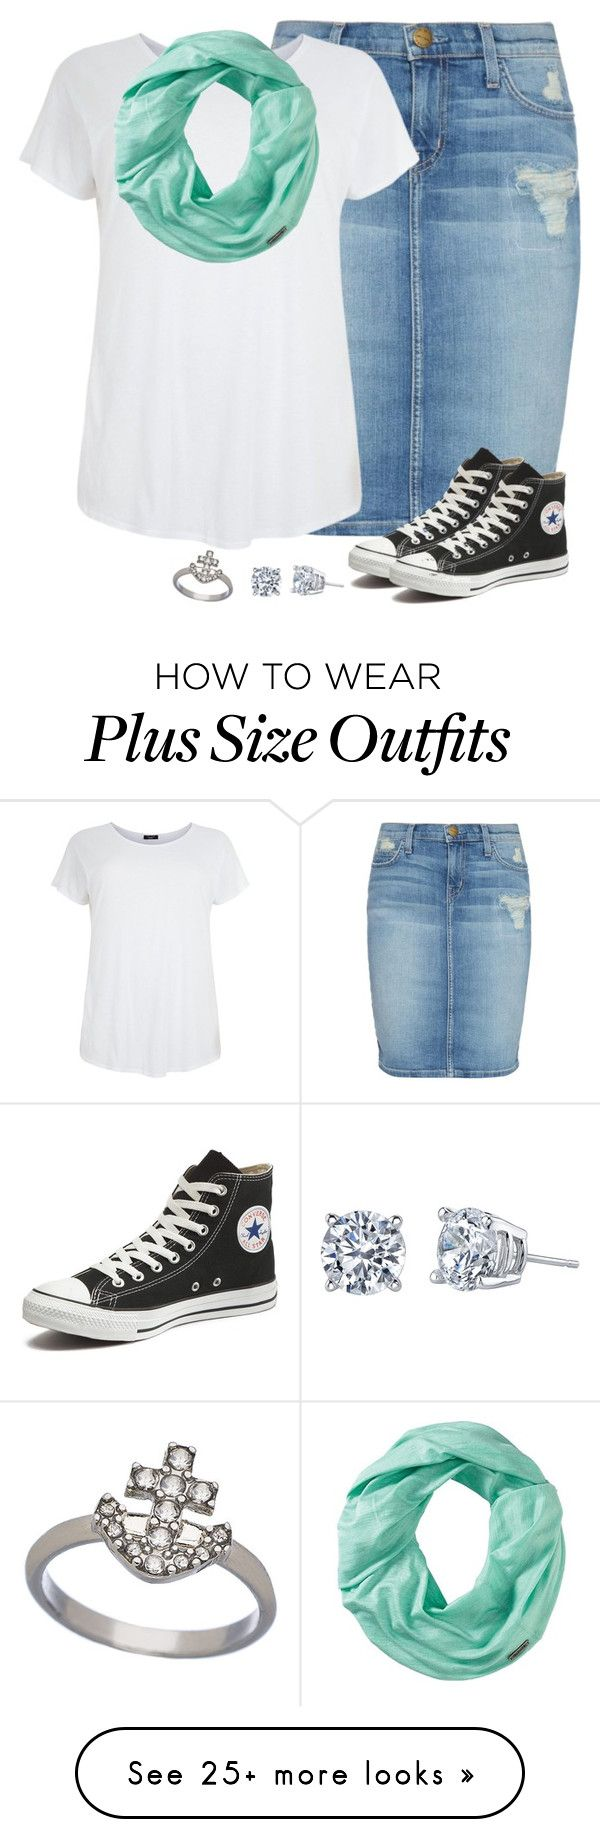 """""""Outfit ~Charity"""" by isongirls on Polyvore featuring Current/Elliott, Smartwool, Converse, Blu Bijoux, women's clothing, women's fashion, women, female, woman and misses"""